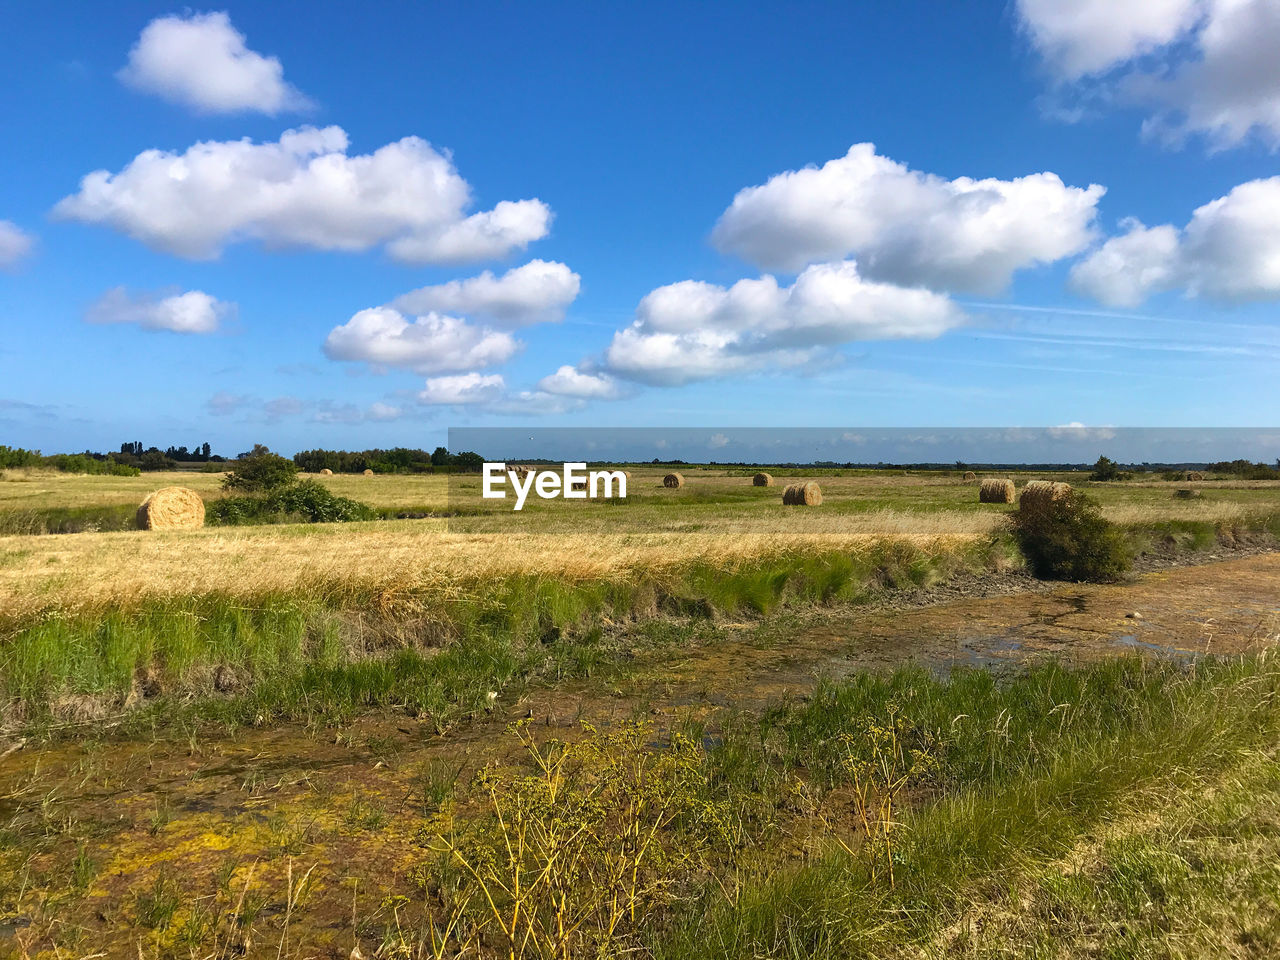 land, environment, field, landscape, sky, plant, grass, tranquil scene, tranquility, cloud - sky, nature, beauty in nature, scenics - nature, day, no people, agriculture, bale, rural scene, growth, non-urban scene, outdoors